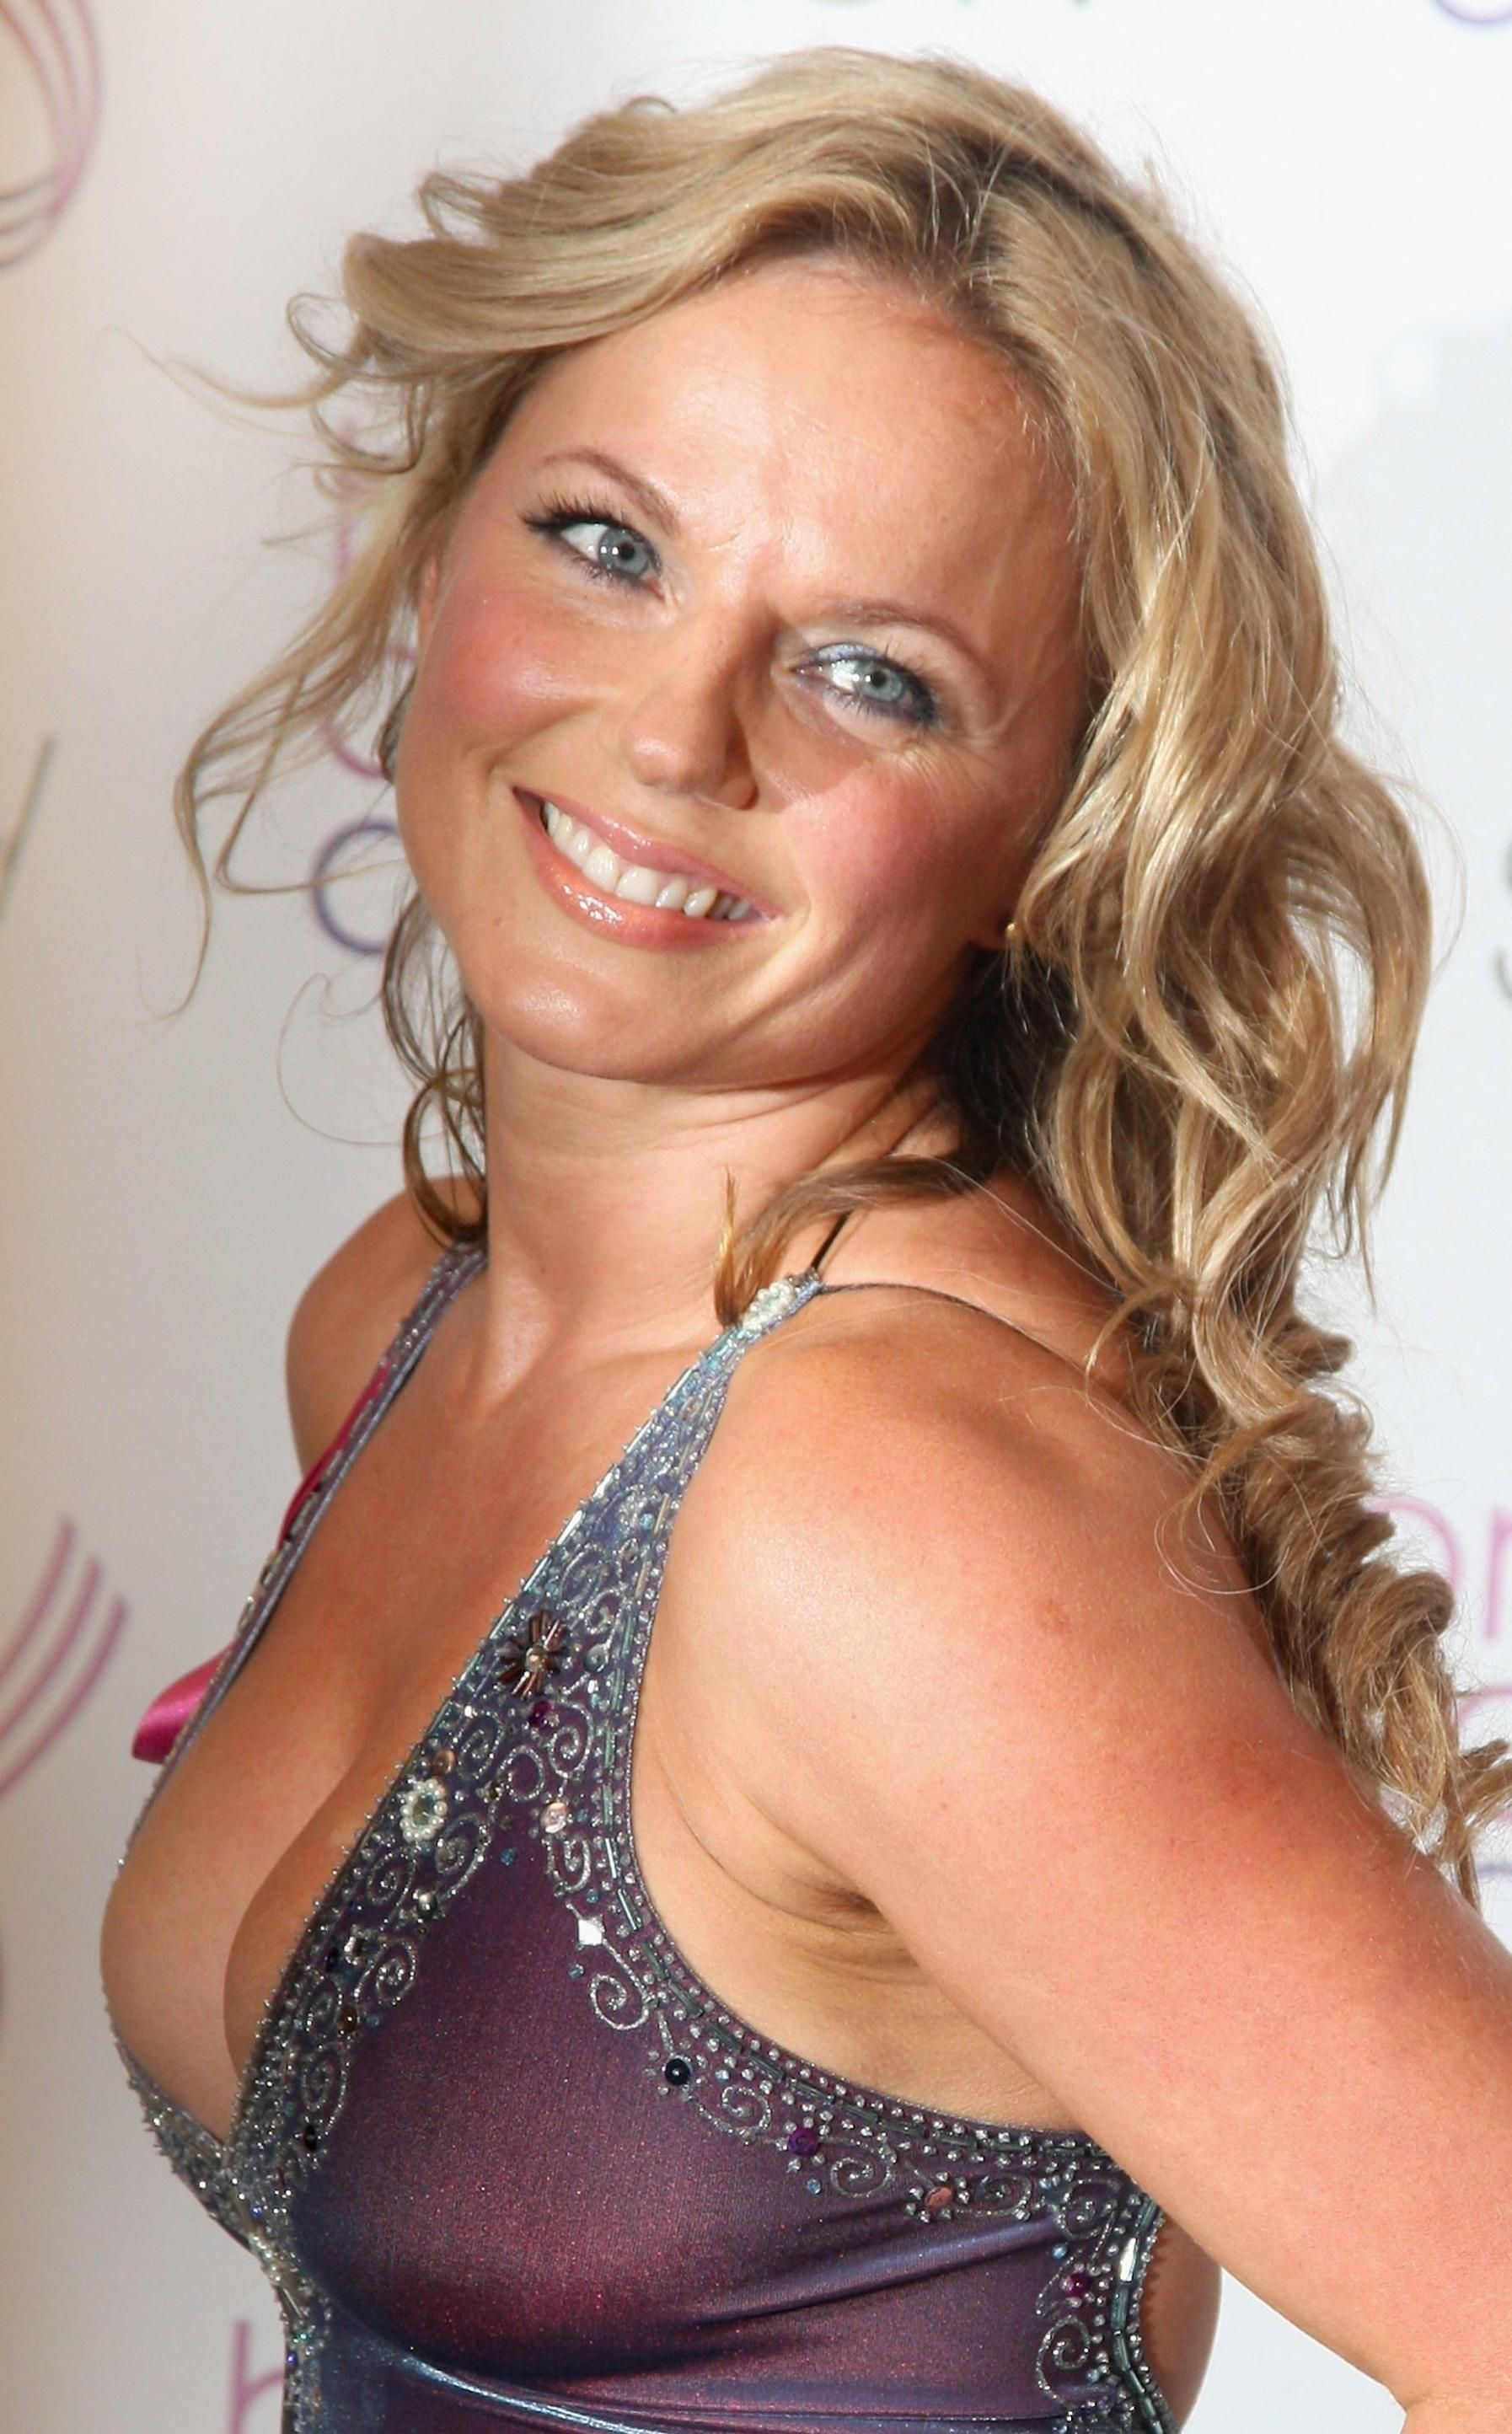 17 Best images about Geri on Pinterest | Before and after pictures ...